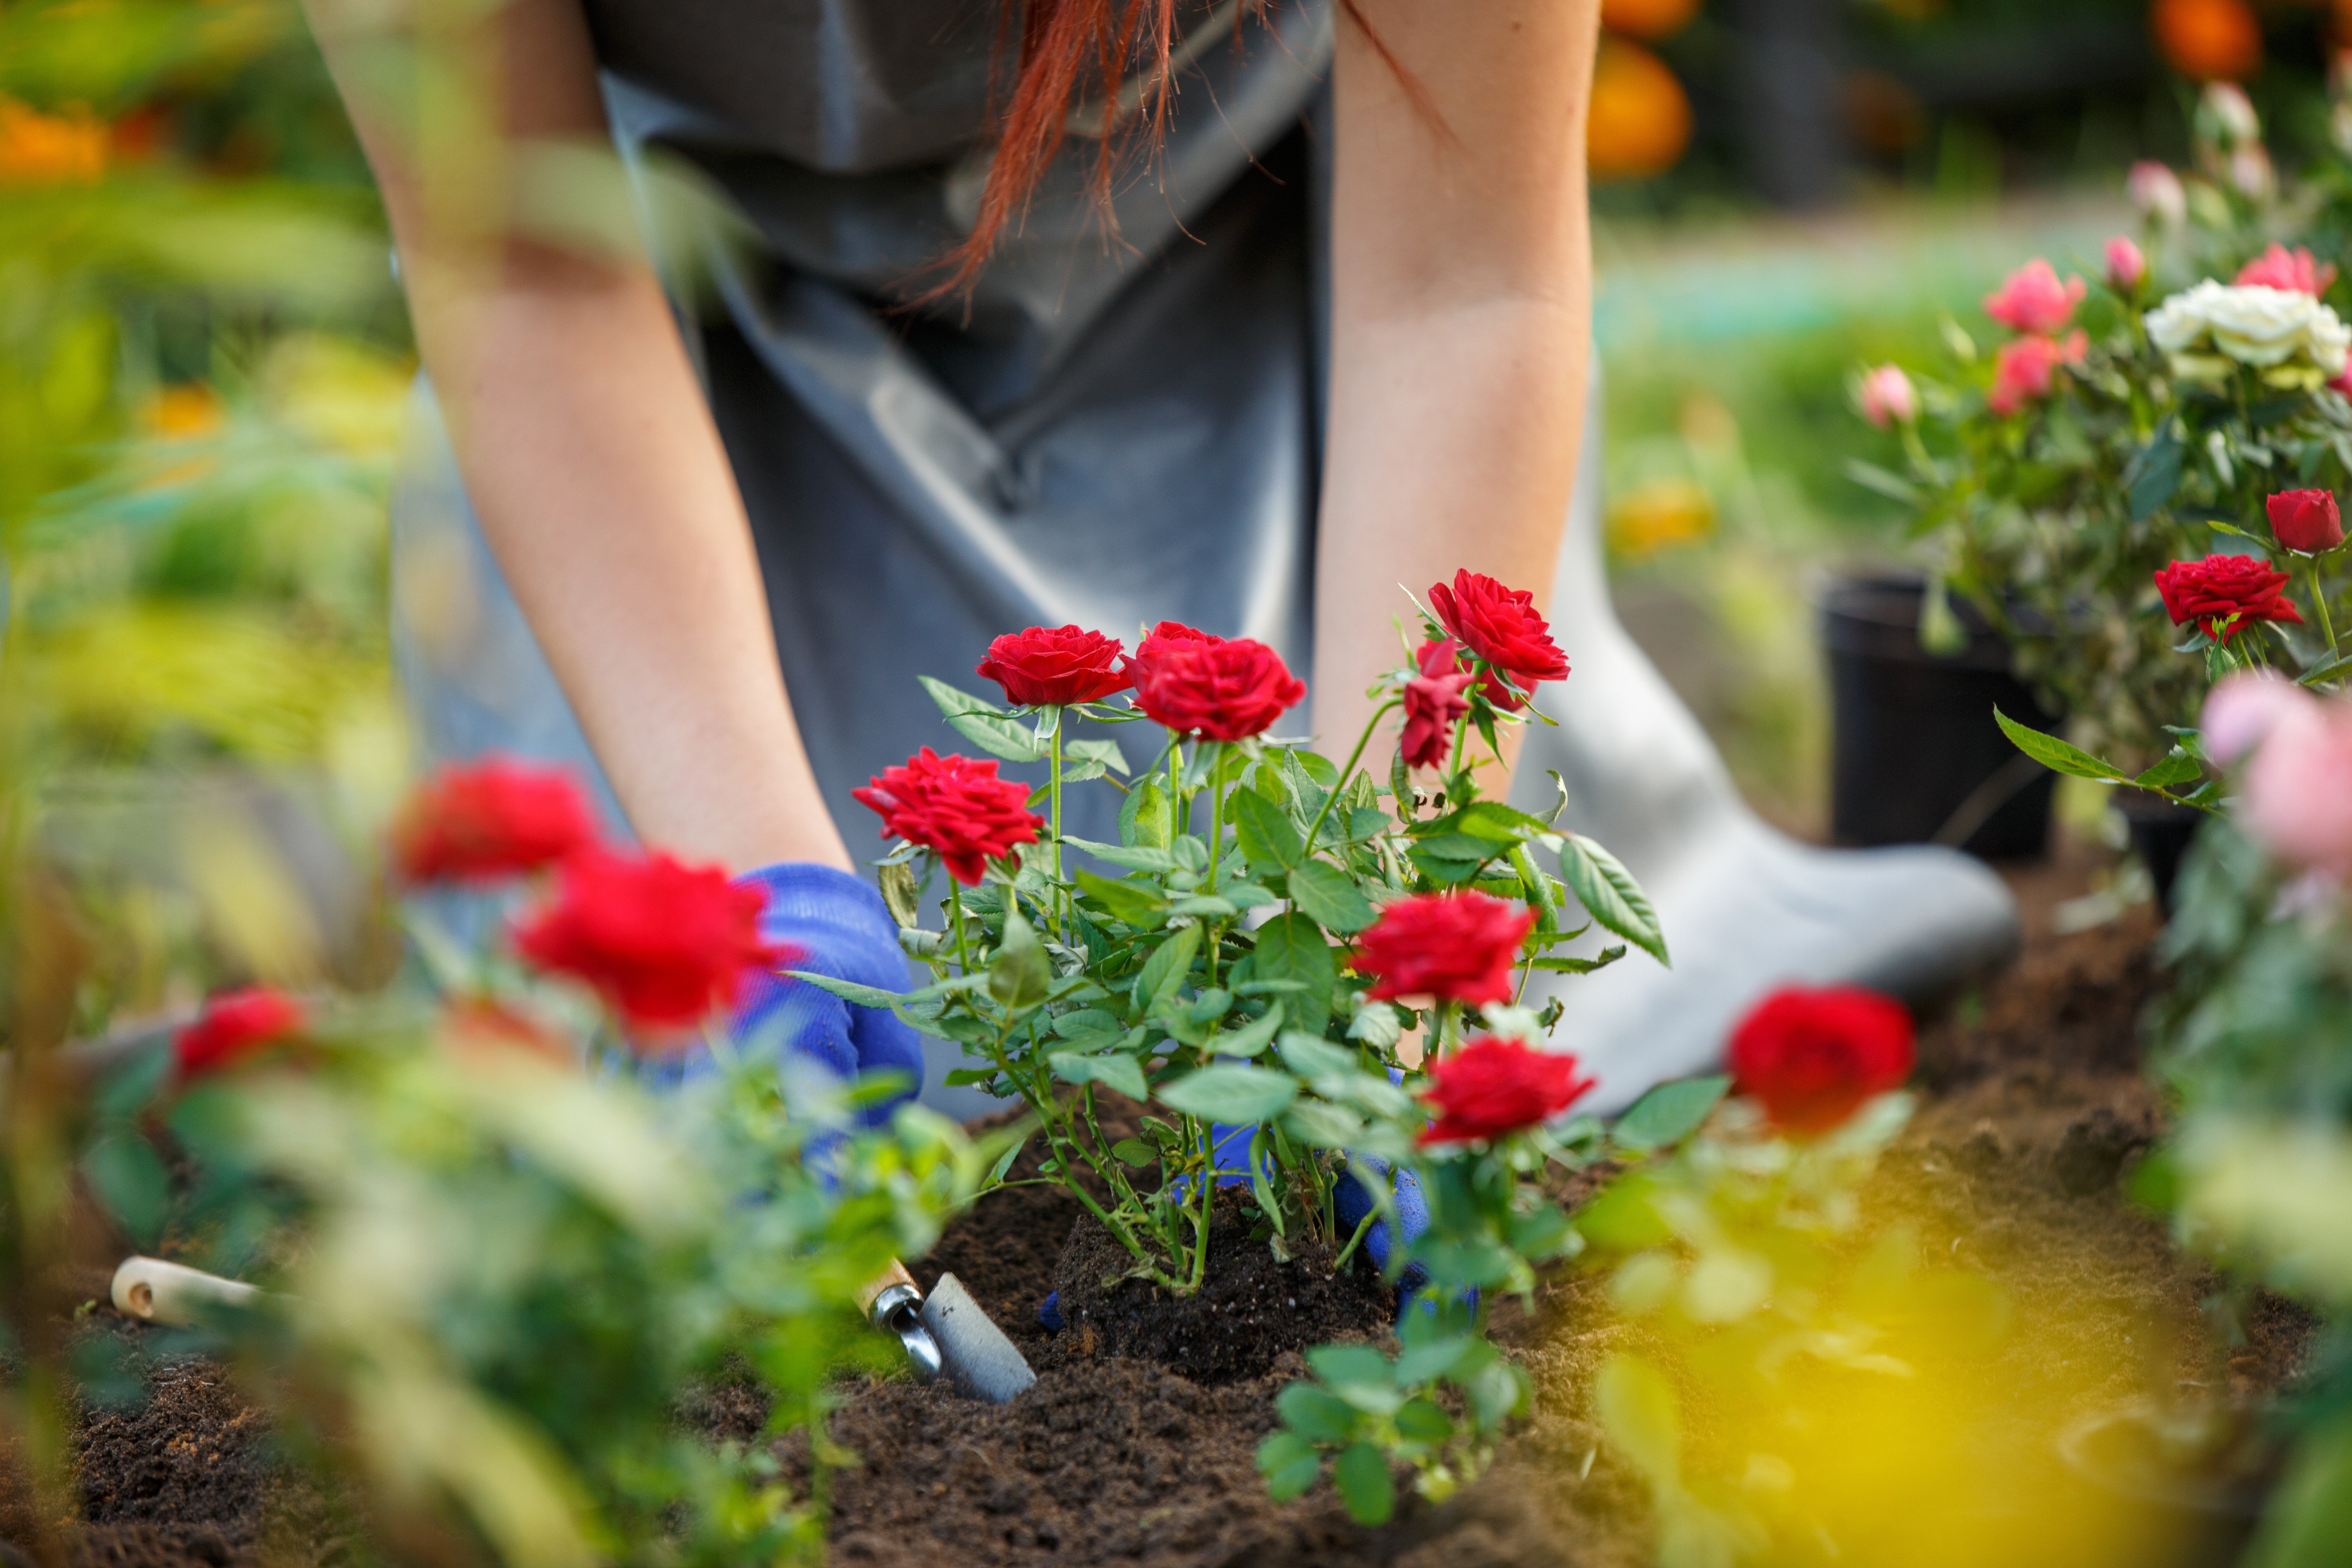 Image of agronomist planting red roses in garden on summer day